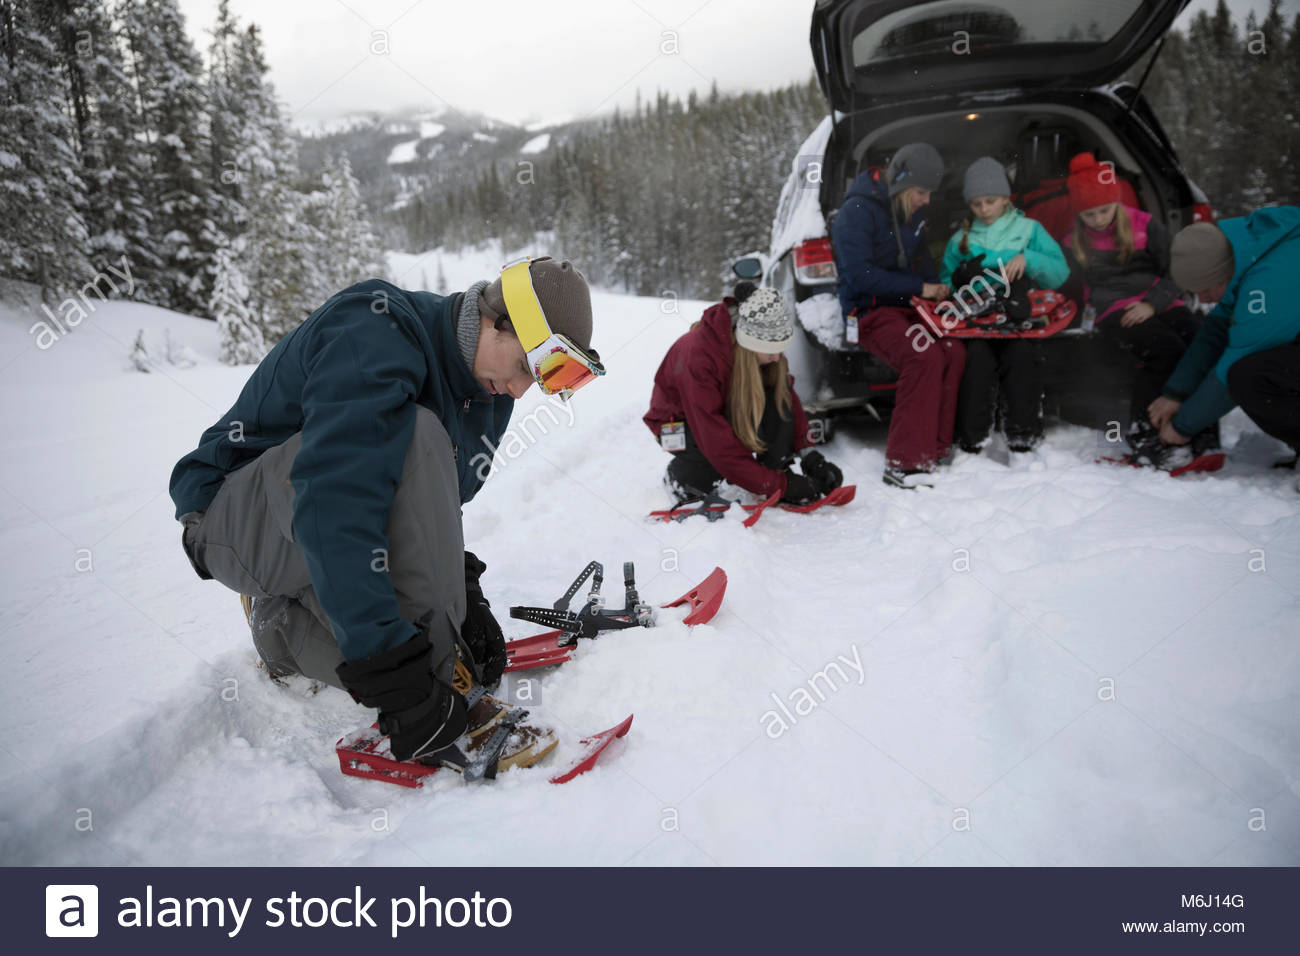 Family preparing for snowshoeing at car in remote snow - Stock Image